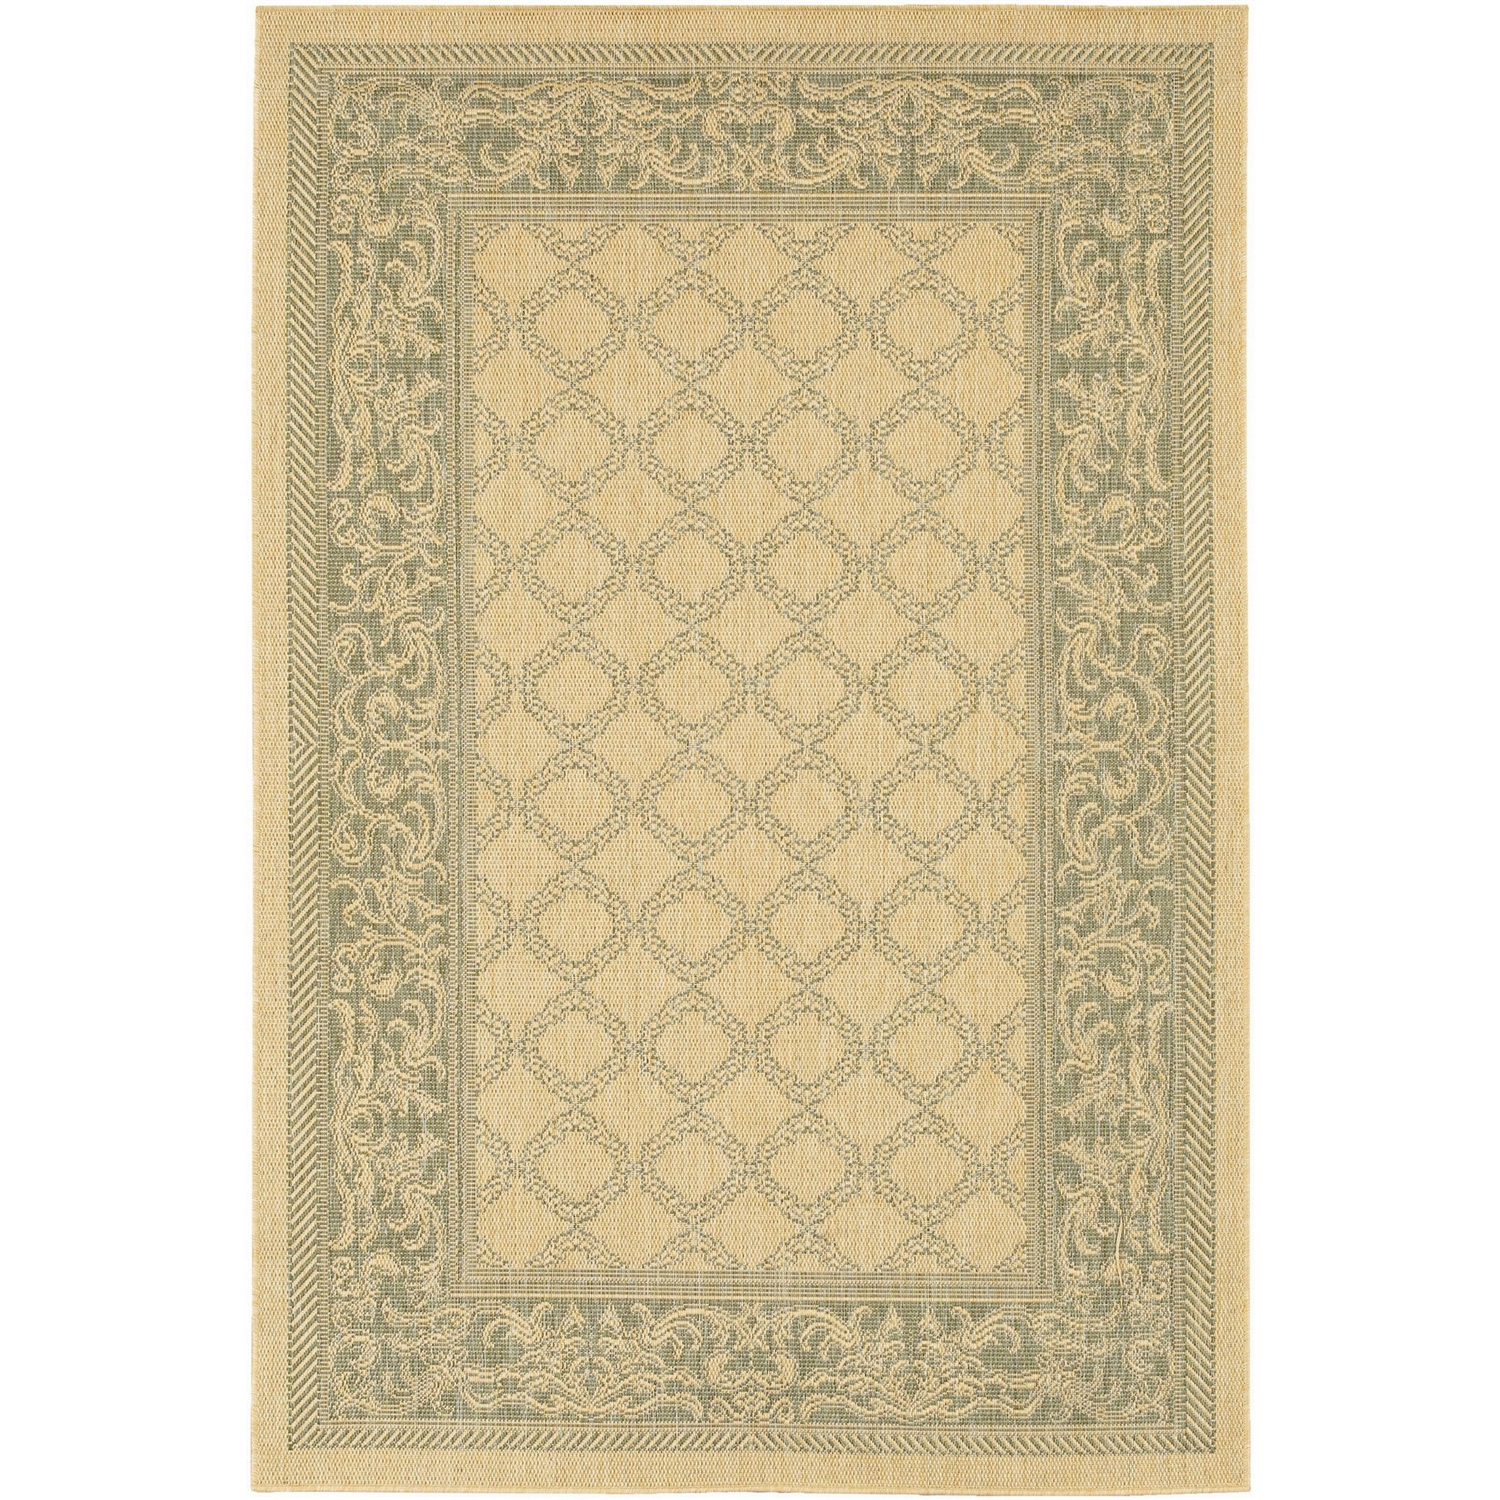 5'3 x 7'6 Area Rug for Indoor Outdoor Use with Garden Trellis Lattice Pattern, CRGL99153 :  This 5'3 x 7'6 Area Rug for Indoor Outdoor Use with Garden Trellis Lattice Pattern would be a great addition to your home. It is made of synthetic materials and is made in Belgium. 100% Recyclable; Construction: Machine made; Color: Natural / Green; Construction: Machine Made; Technique: Machine Woven; Primary Pattern: Geometric; Oriental; Primary Color: Natural; Border Material: Synthetic; Border Color: Natural. Material Details: Polypropylene; Reversible: No; Rug Pad Needed: Yes; Water Resistant: Yes; Mildew Resistant: Yes; Eco-Friendly: No; Outdoor Use: Yes; Product Warranty: 1 year limited warranty.